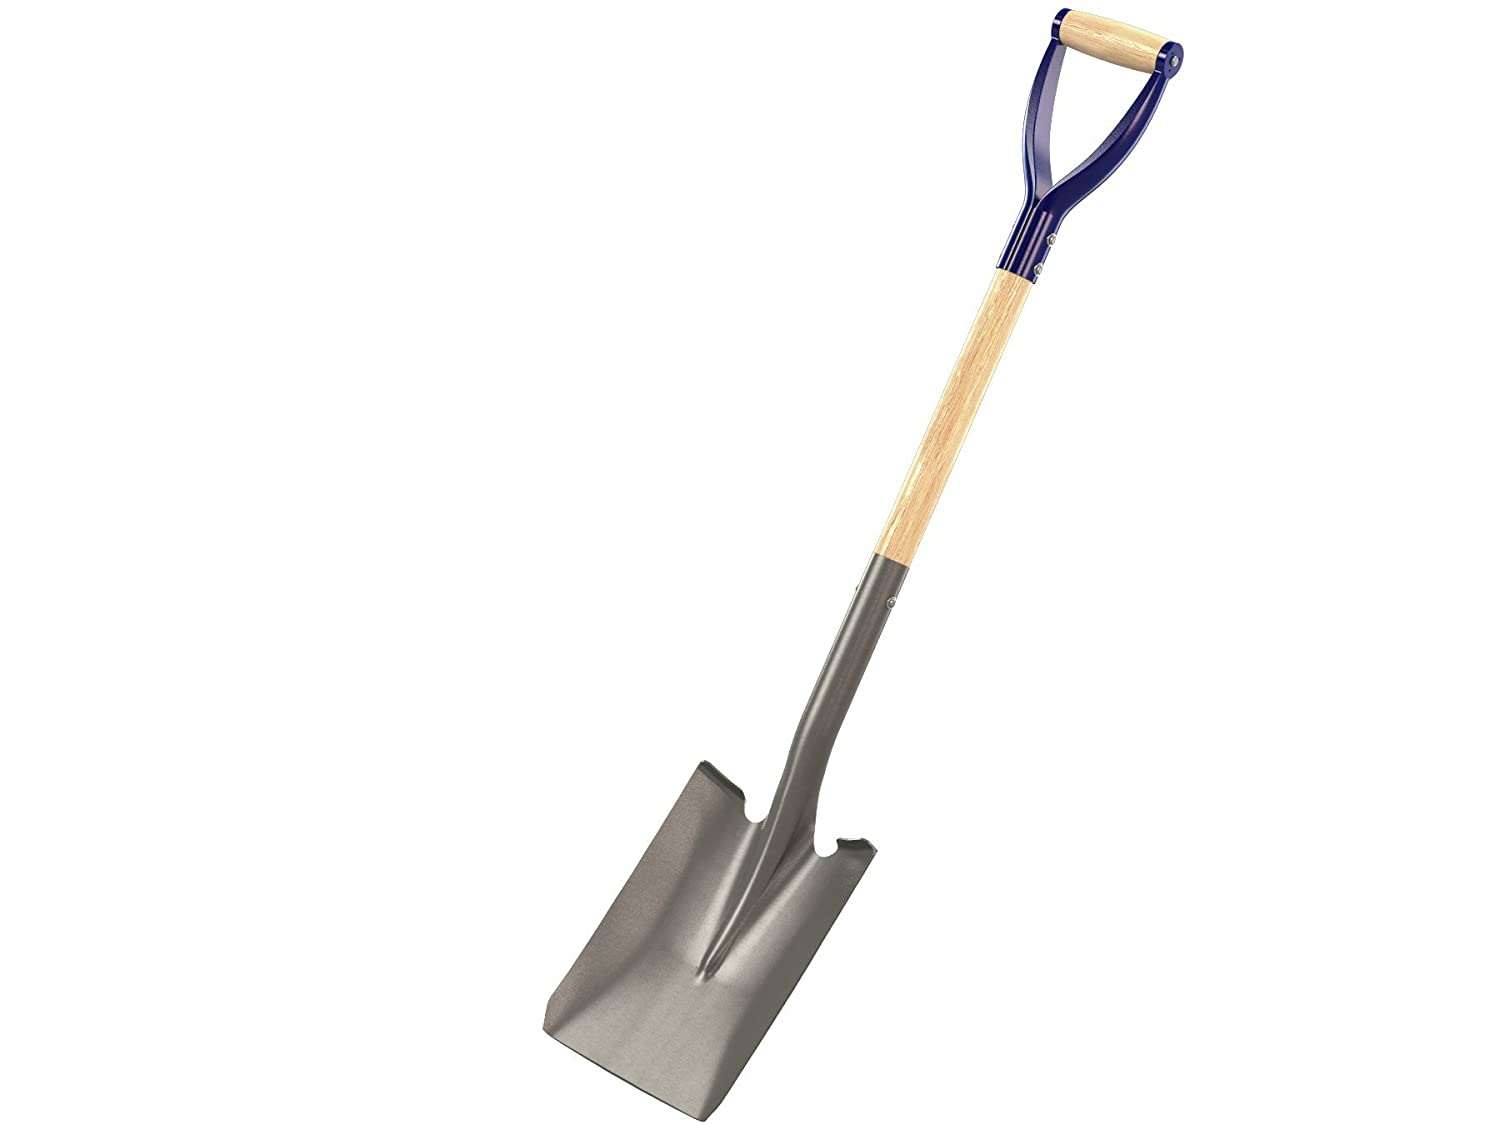 Bon 14-263 Contractor Grade Square Point Shovel with 27-Inch D Handle